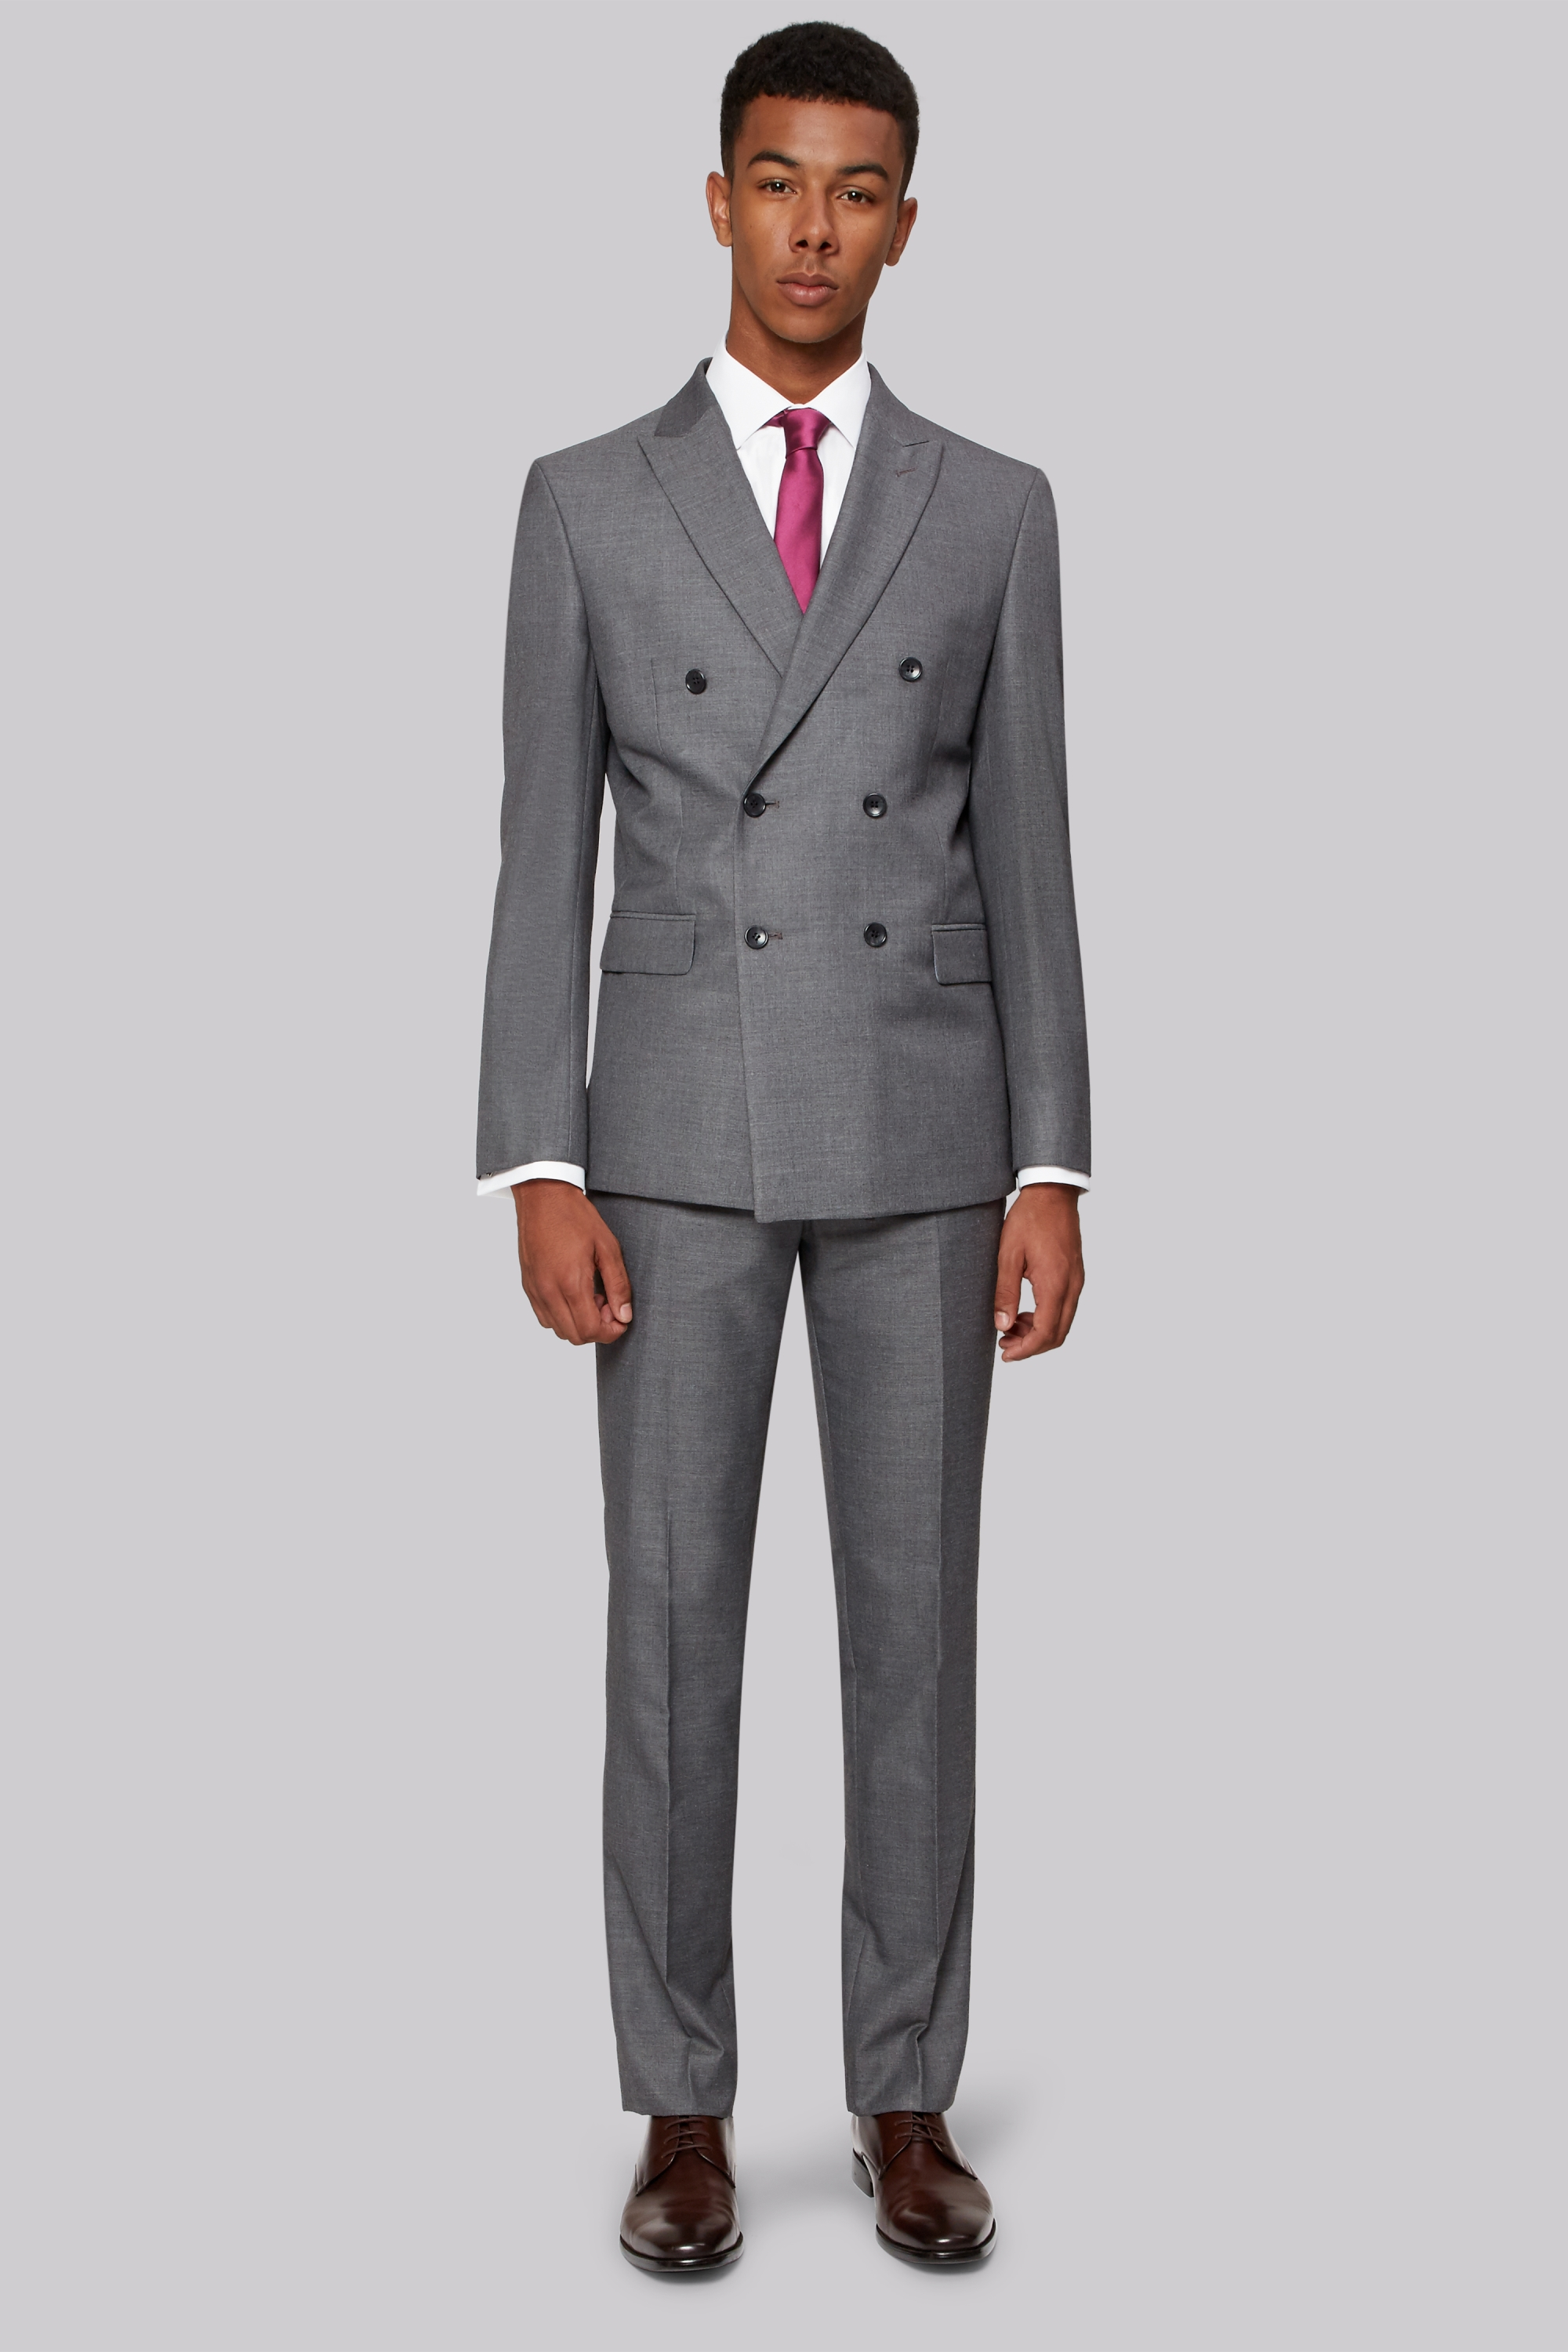 Browse Men's Skinny Fit Sale Suits at Moss Bros